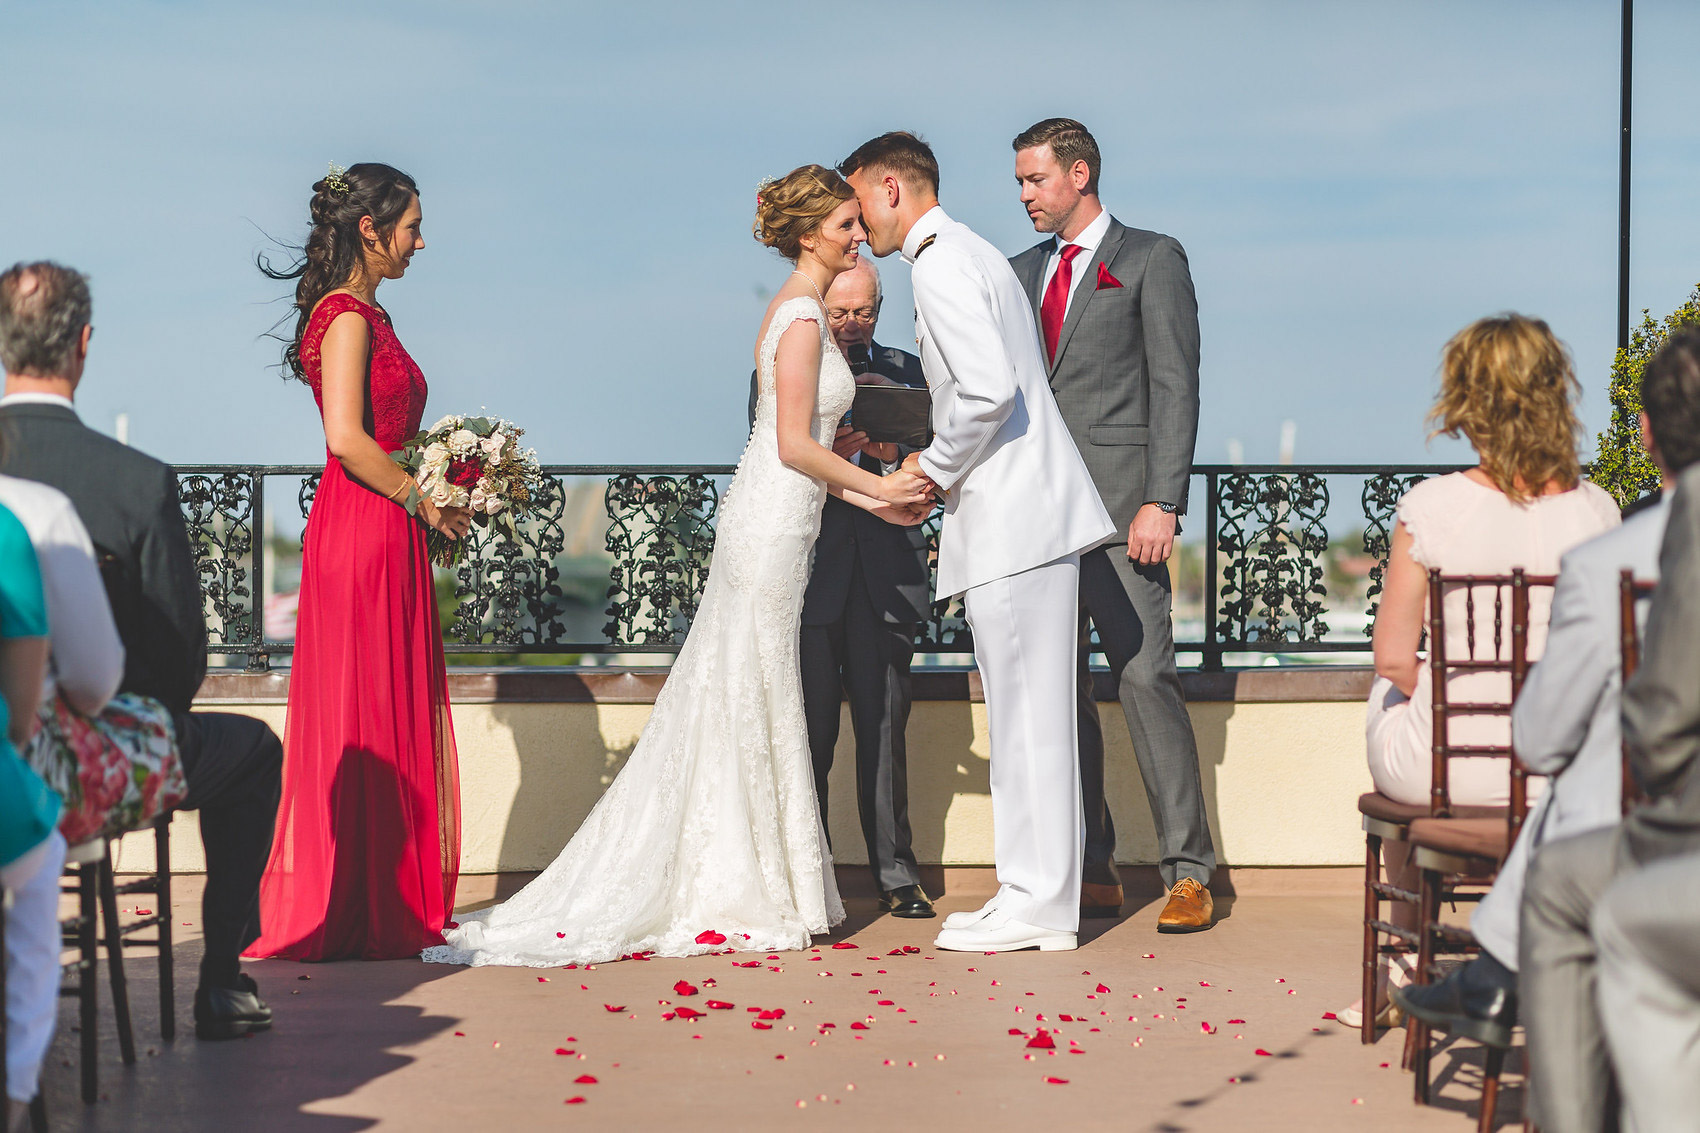 Adam-Szrmack-Bowing-the-white-room-st-augustine-wedding-photographer-58.jpg